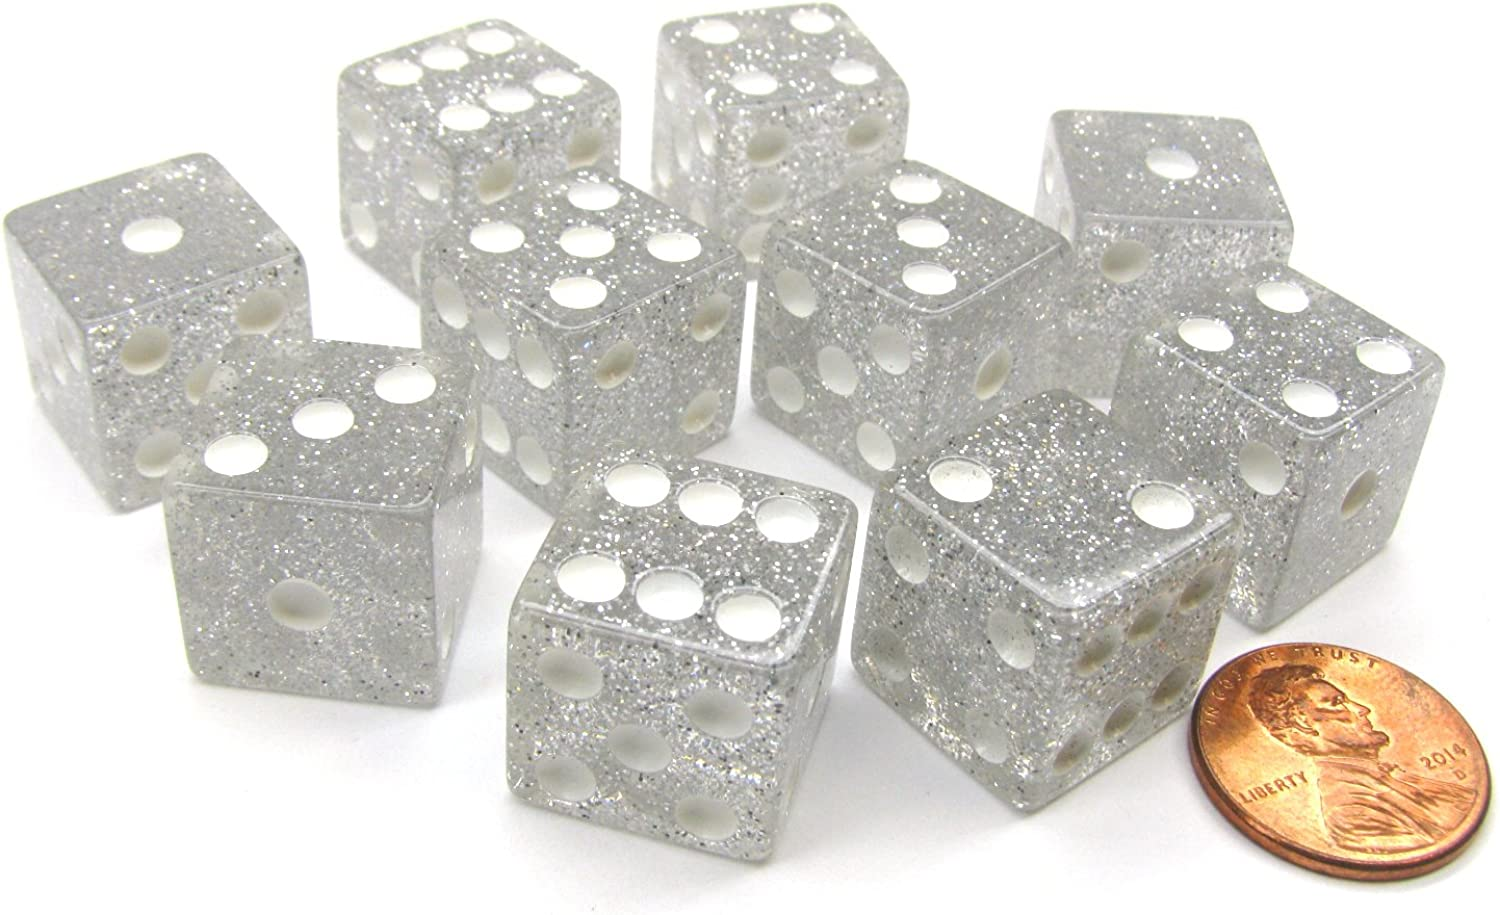 Set of 10 D6 16mm Glitter Dice - Clear White with White Pips